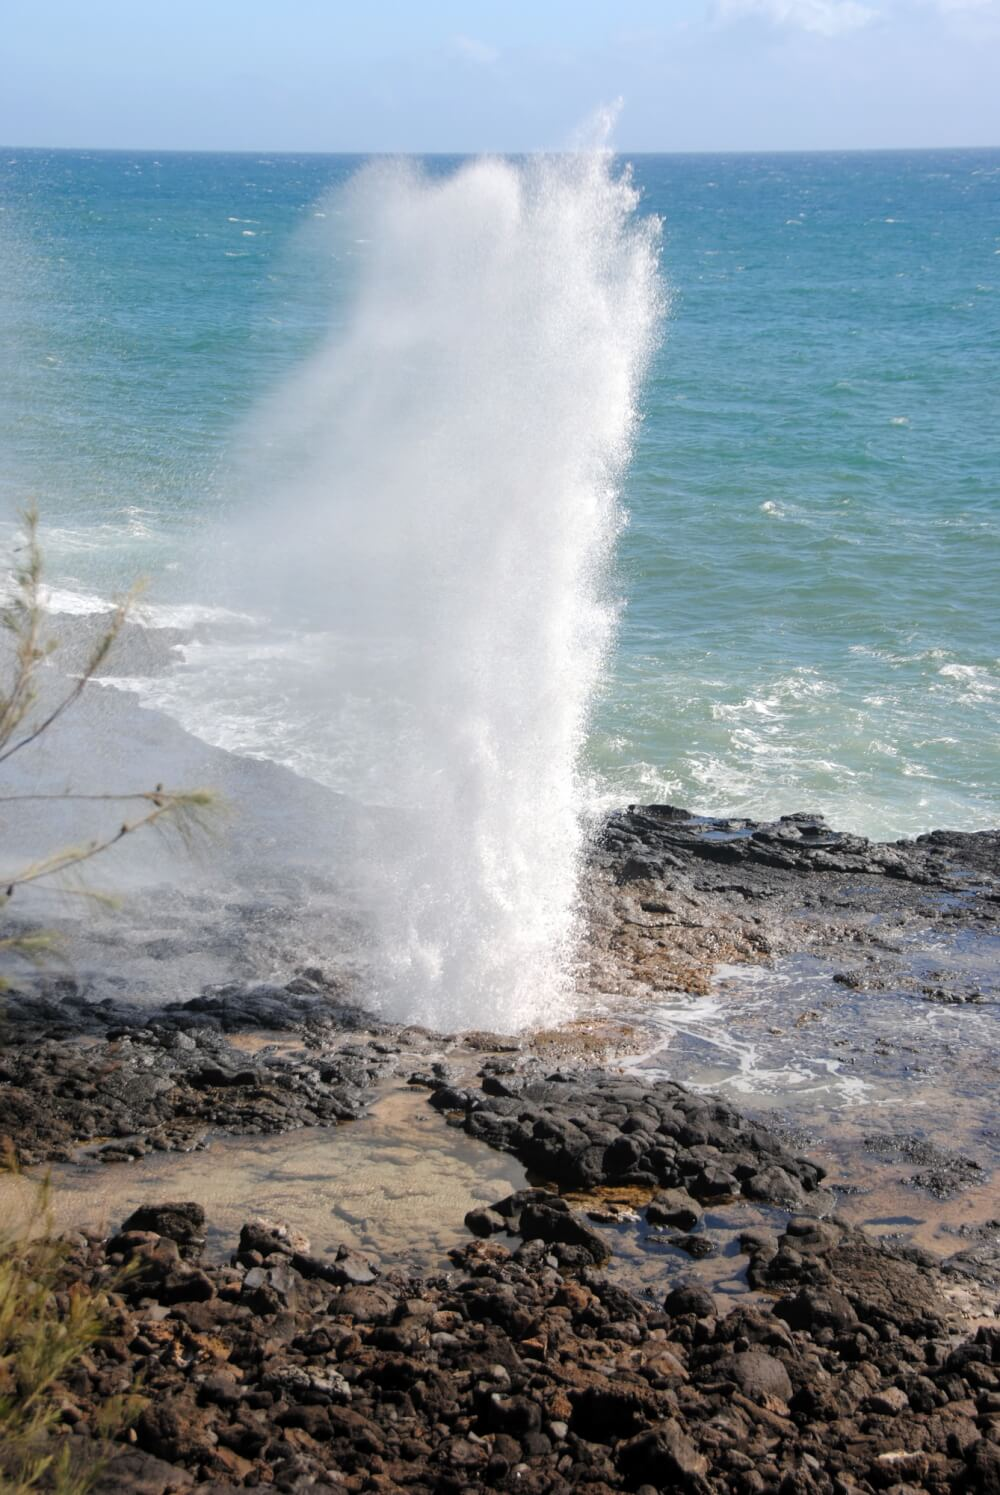 Oahu or Kauai: Which is the Best Hawaiian Island for Kids? Tips featured by top Hawaii travel blog, Hawaii Travel with Kids: Spouting Horn in Poipu is an awesome free thing to do on Kauai with kids